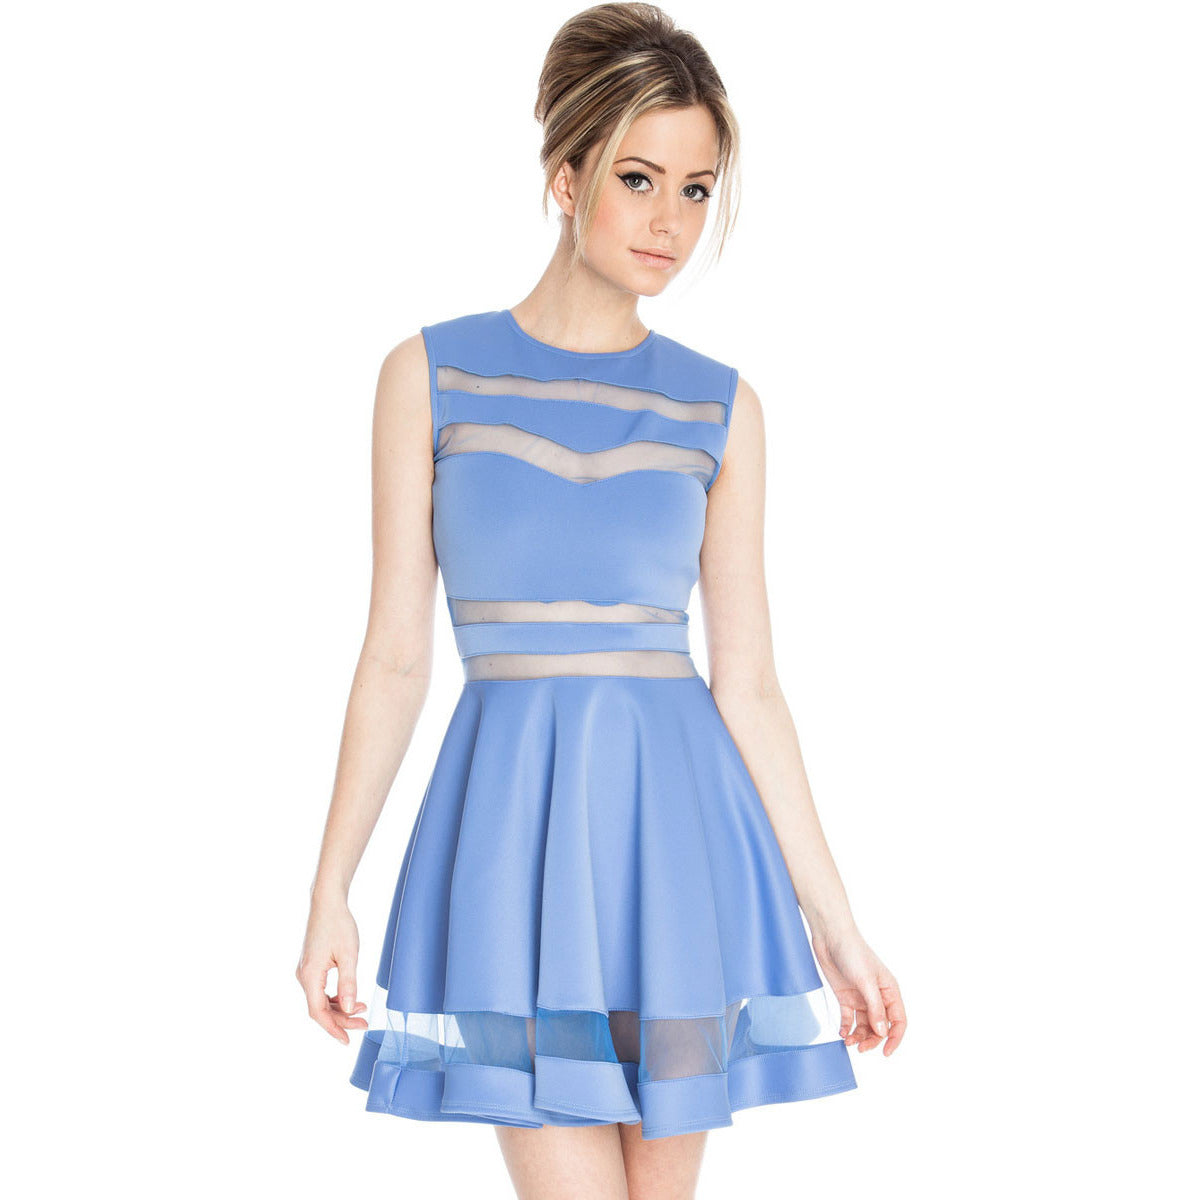 Light Blue Fitting Skater Dress Sale LAVELIQ - LAVELIQ - 1